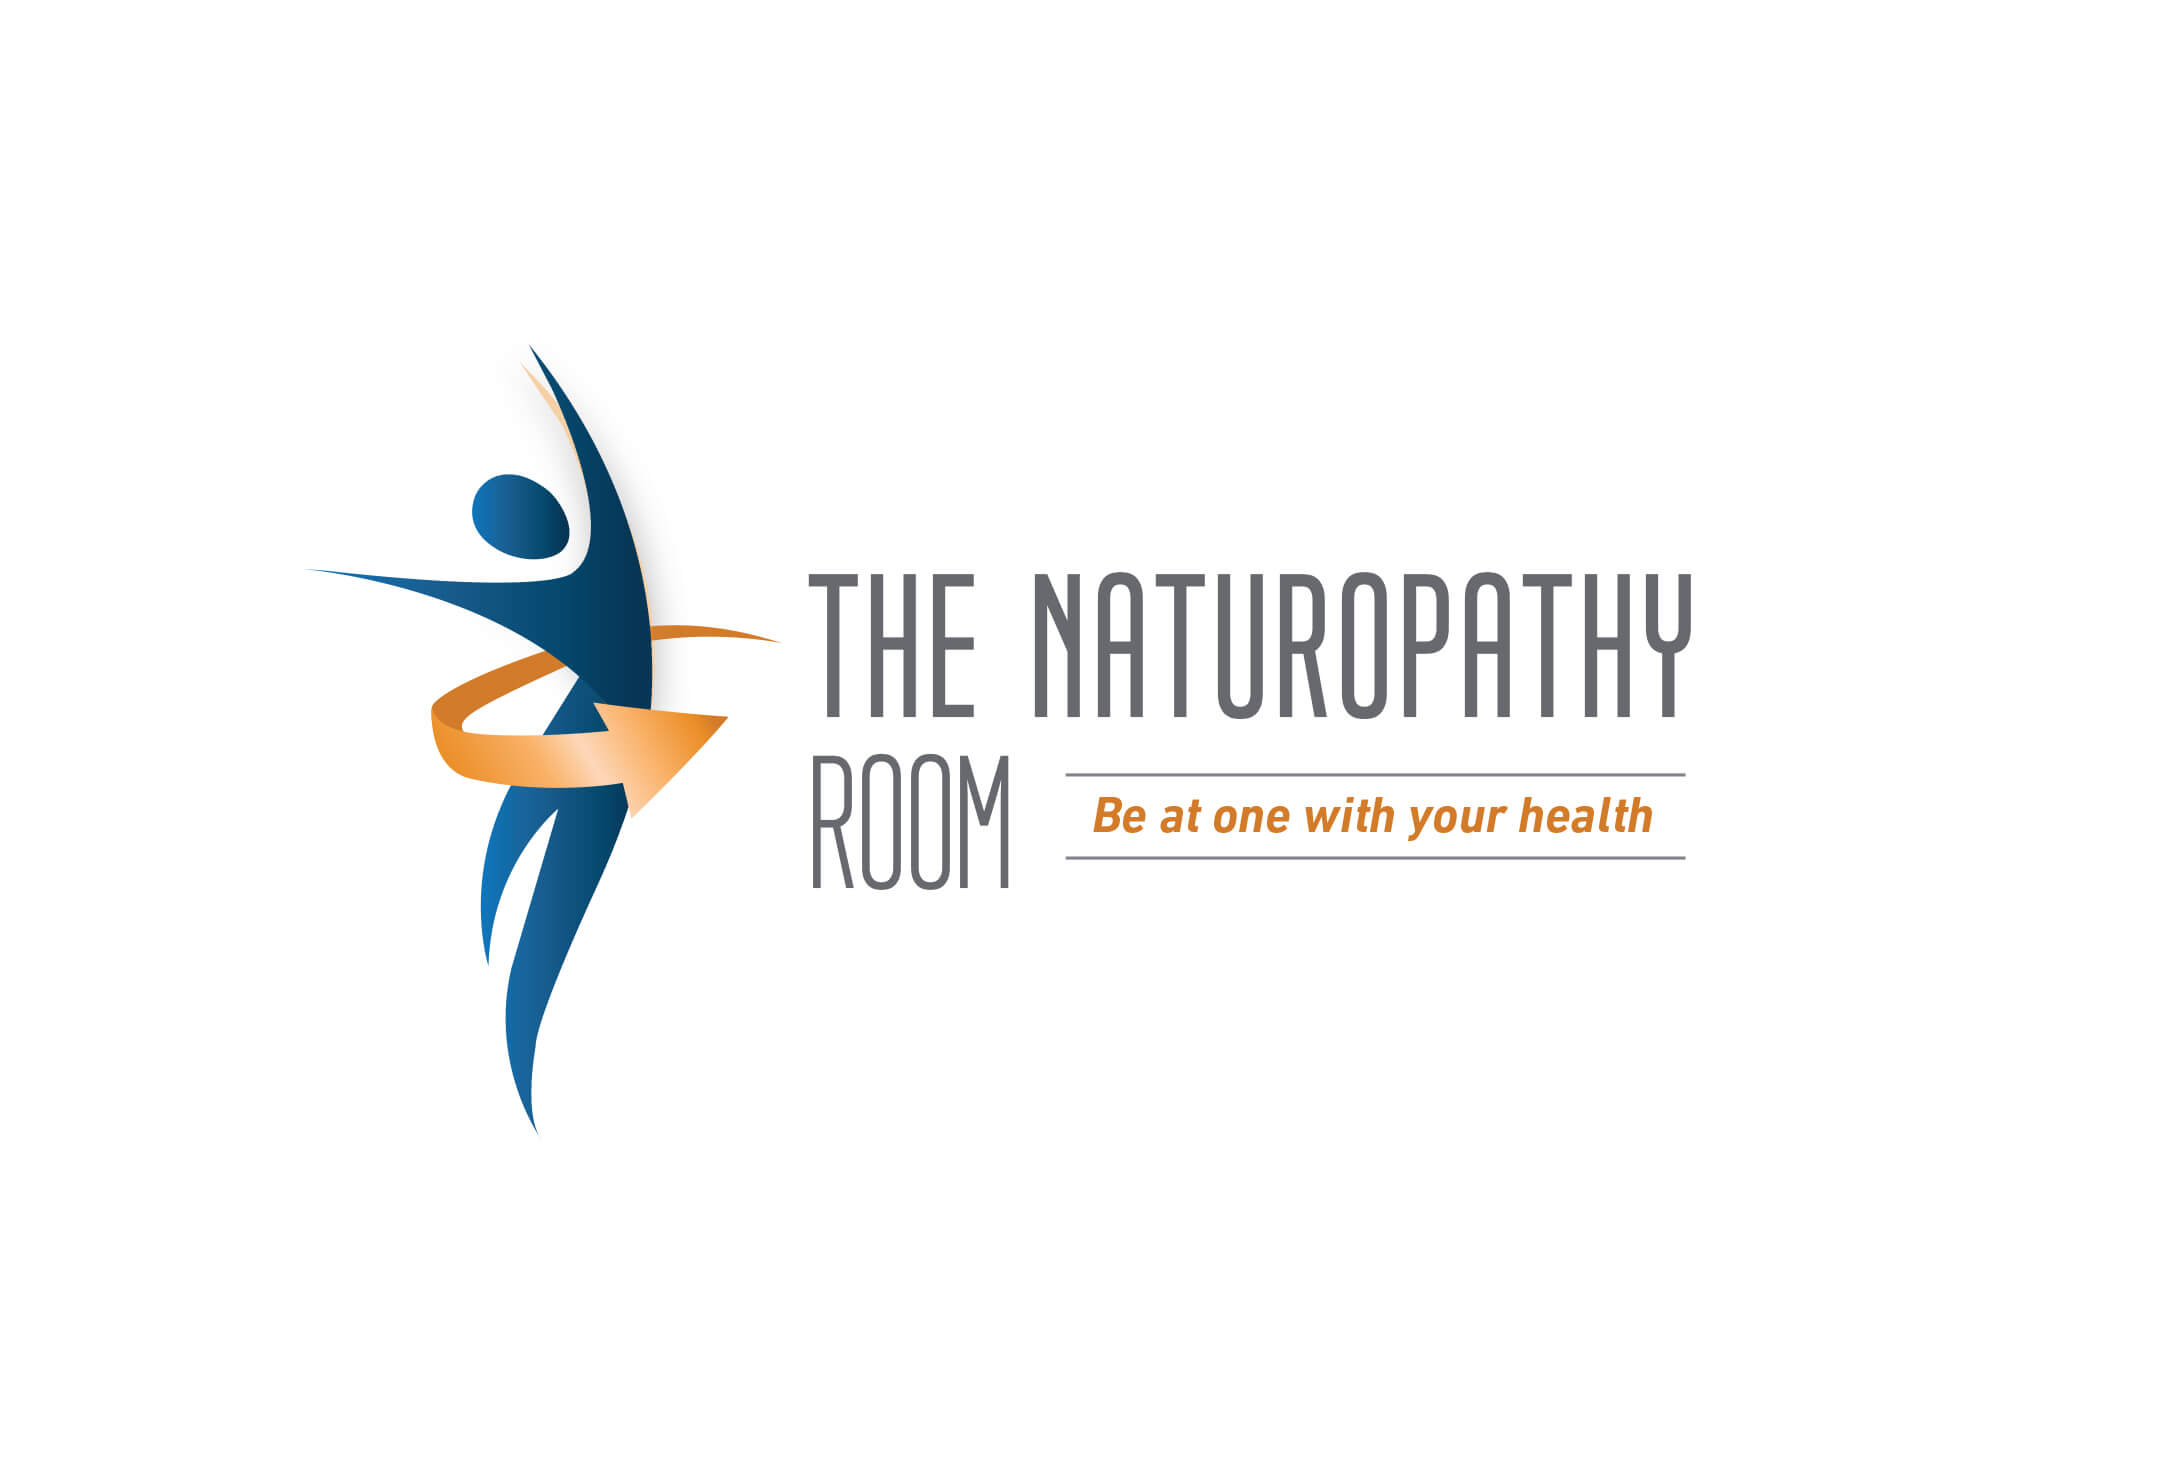 The NATUROPATHY logo